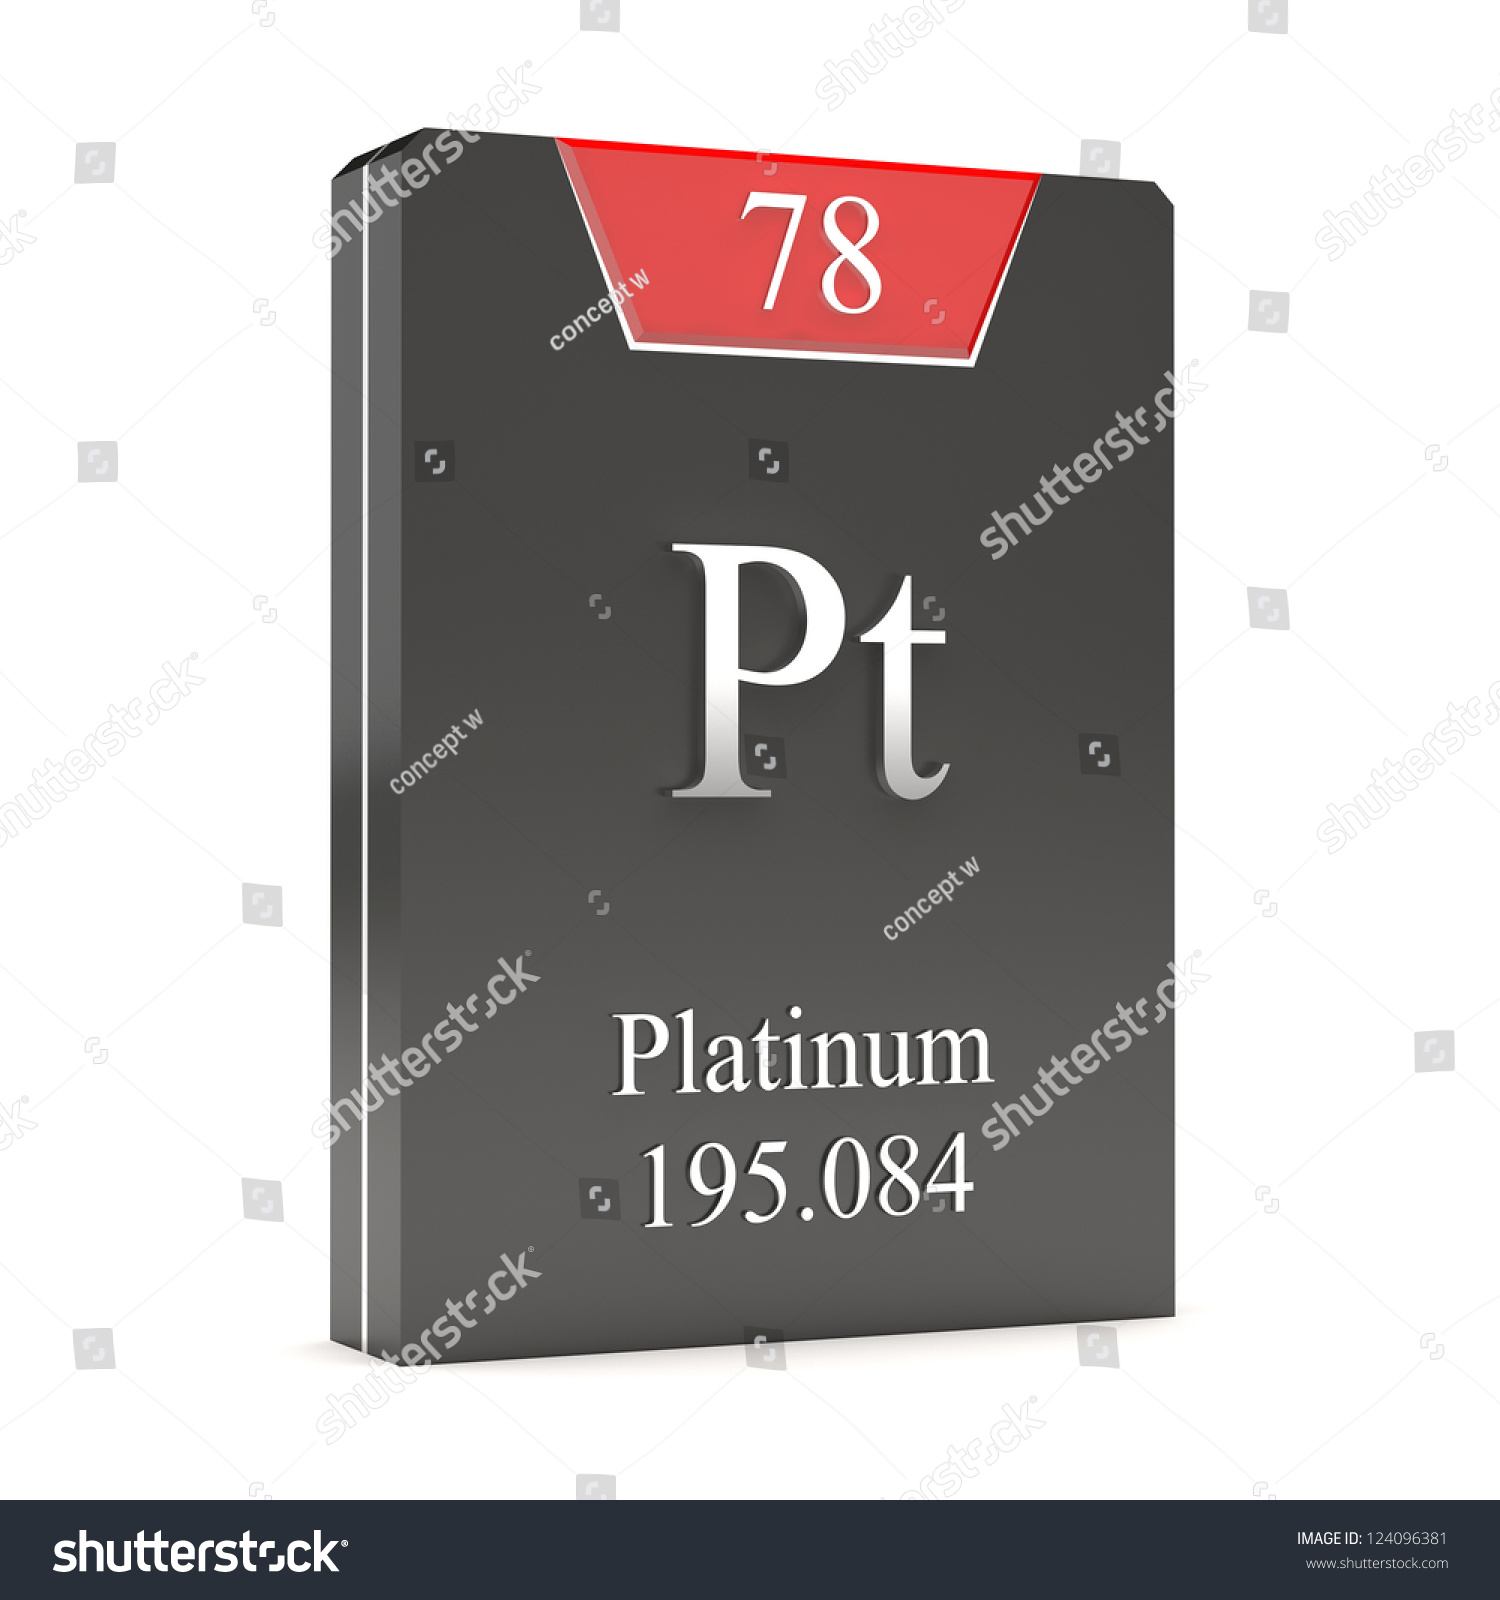 Periodic table for platinum image collections periodic table images symbol for platinum on periodic table image collections periodic periodic table for platinum choice image periodic gamestrikefo Choice Image